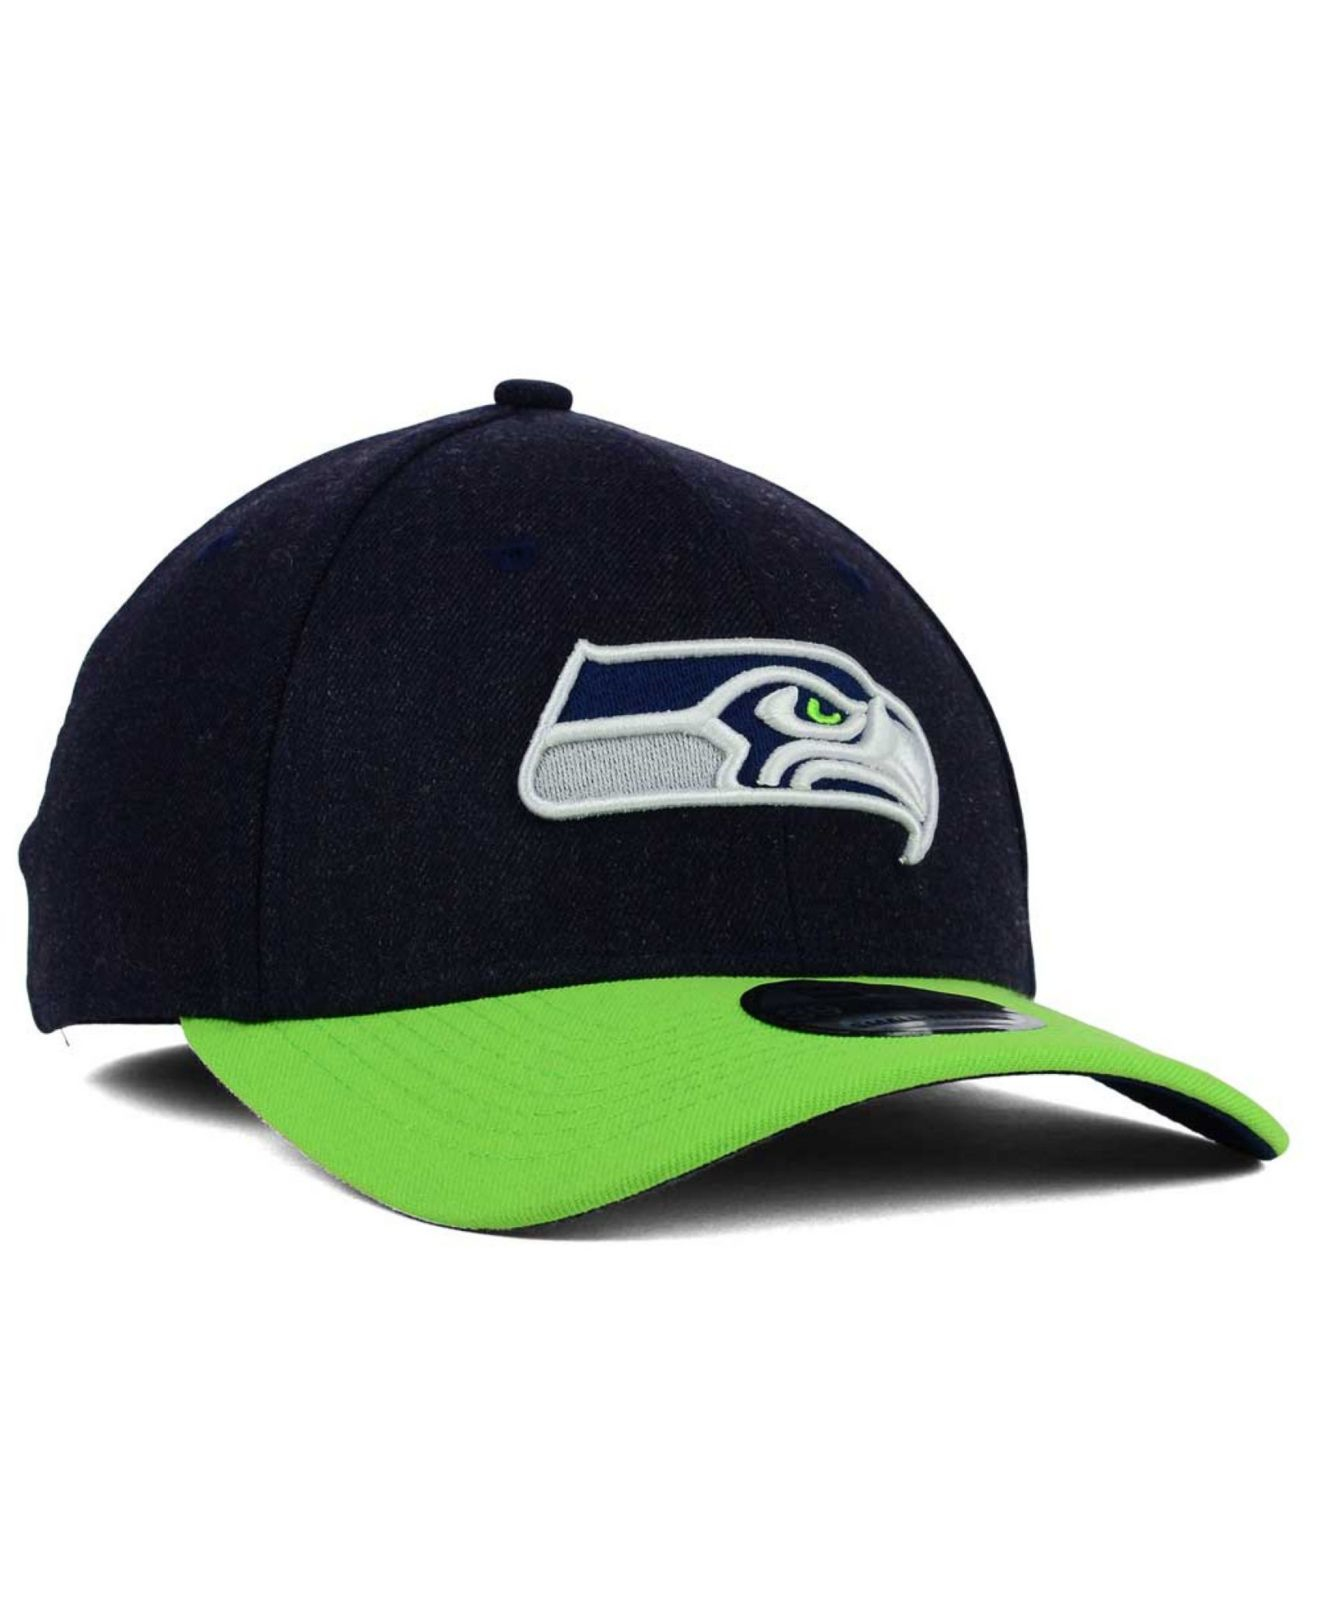 first rate half price good quality new product 5d33e ee254 seattle seahawks new era nfl change up ...